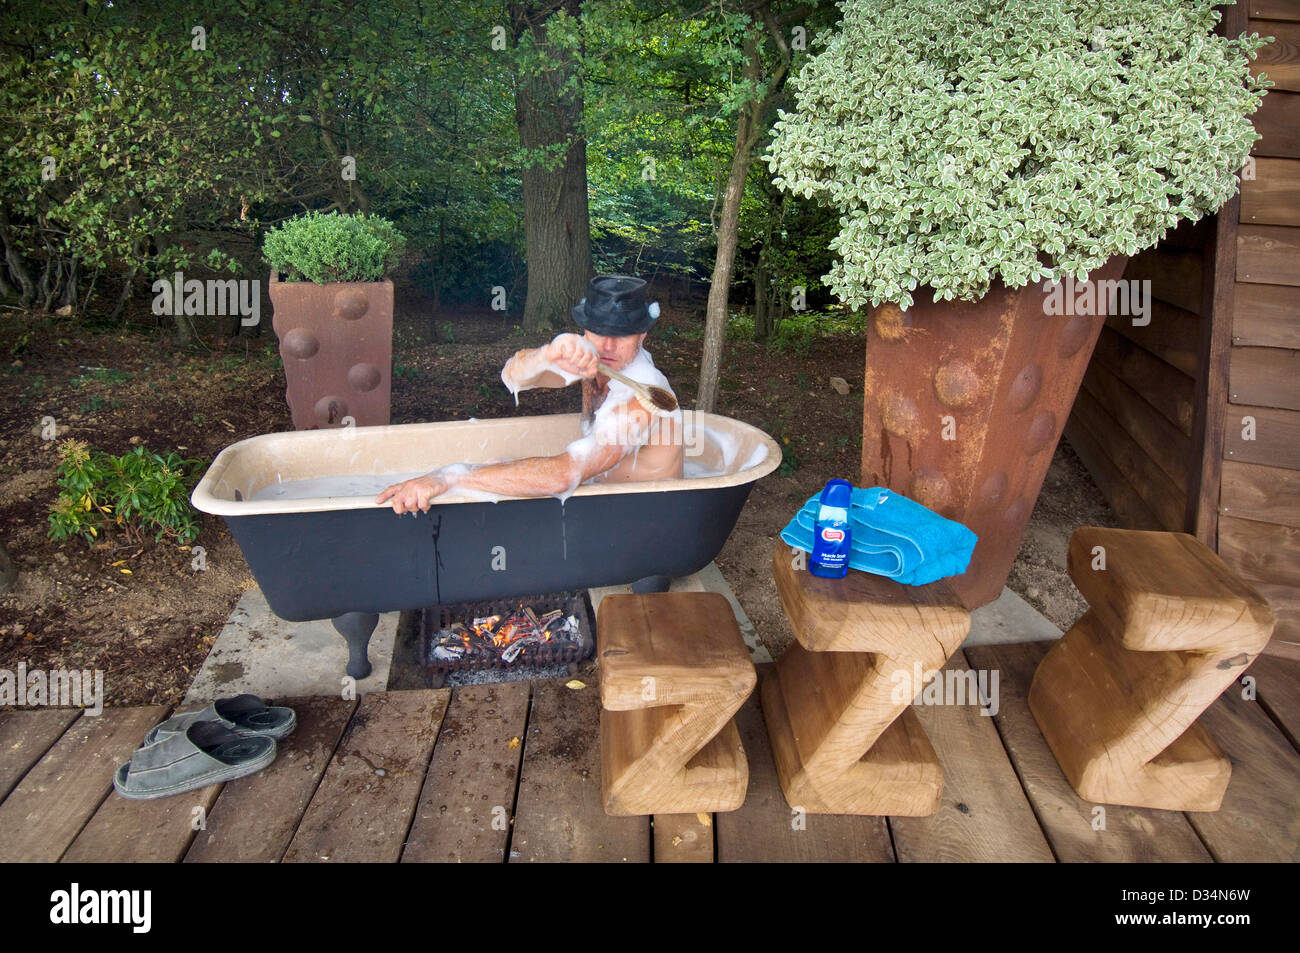 Johnny Woodford, a renowned sculptor and woodworker who has created a range of extraordinary alternative living - Stock Image